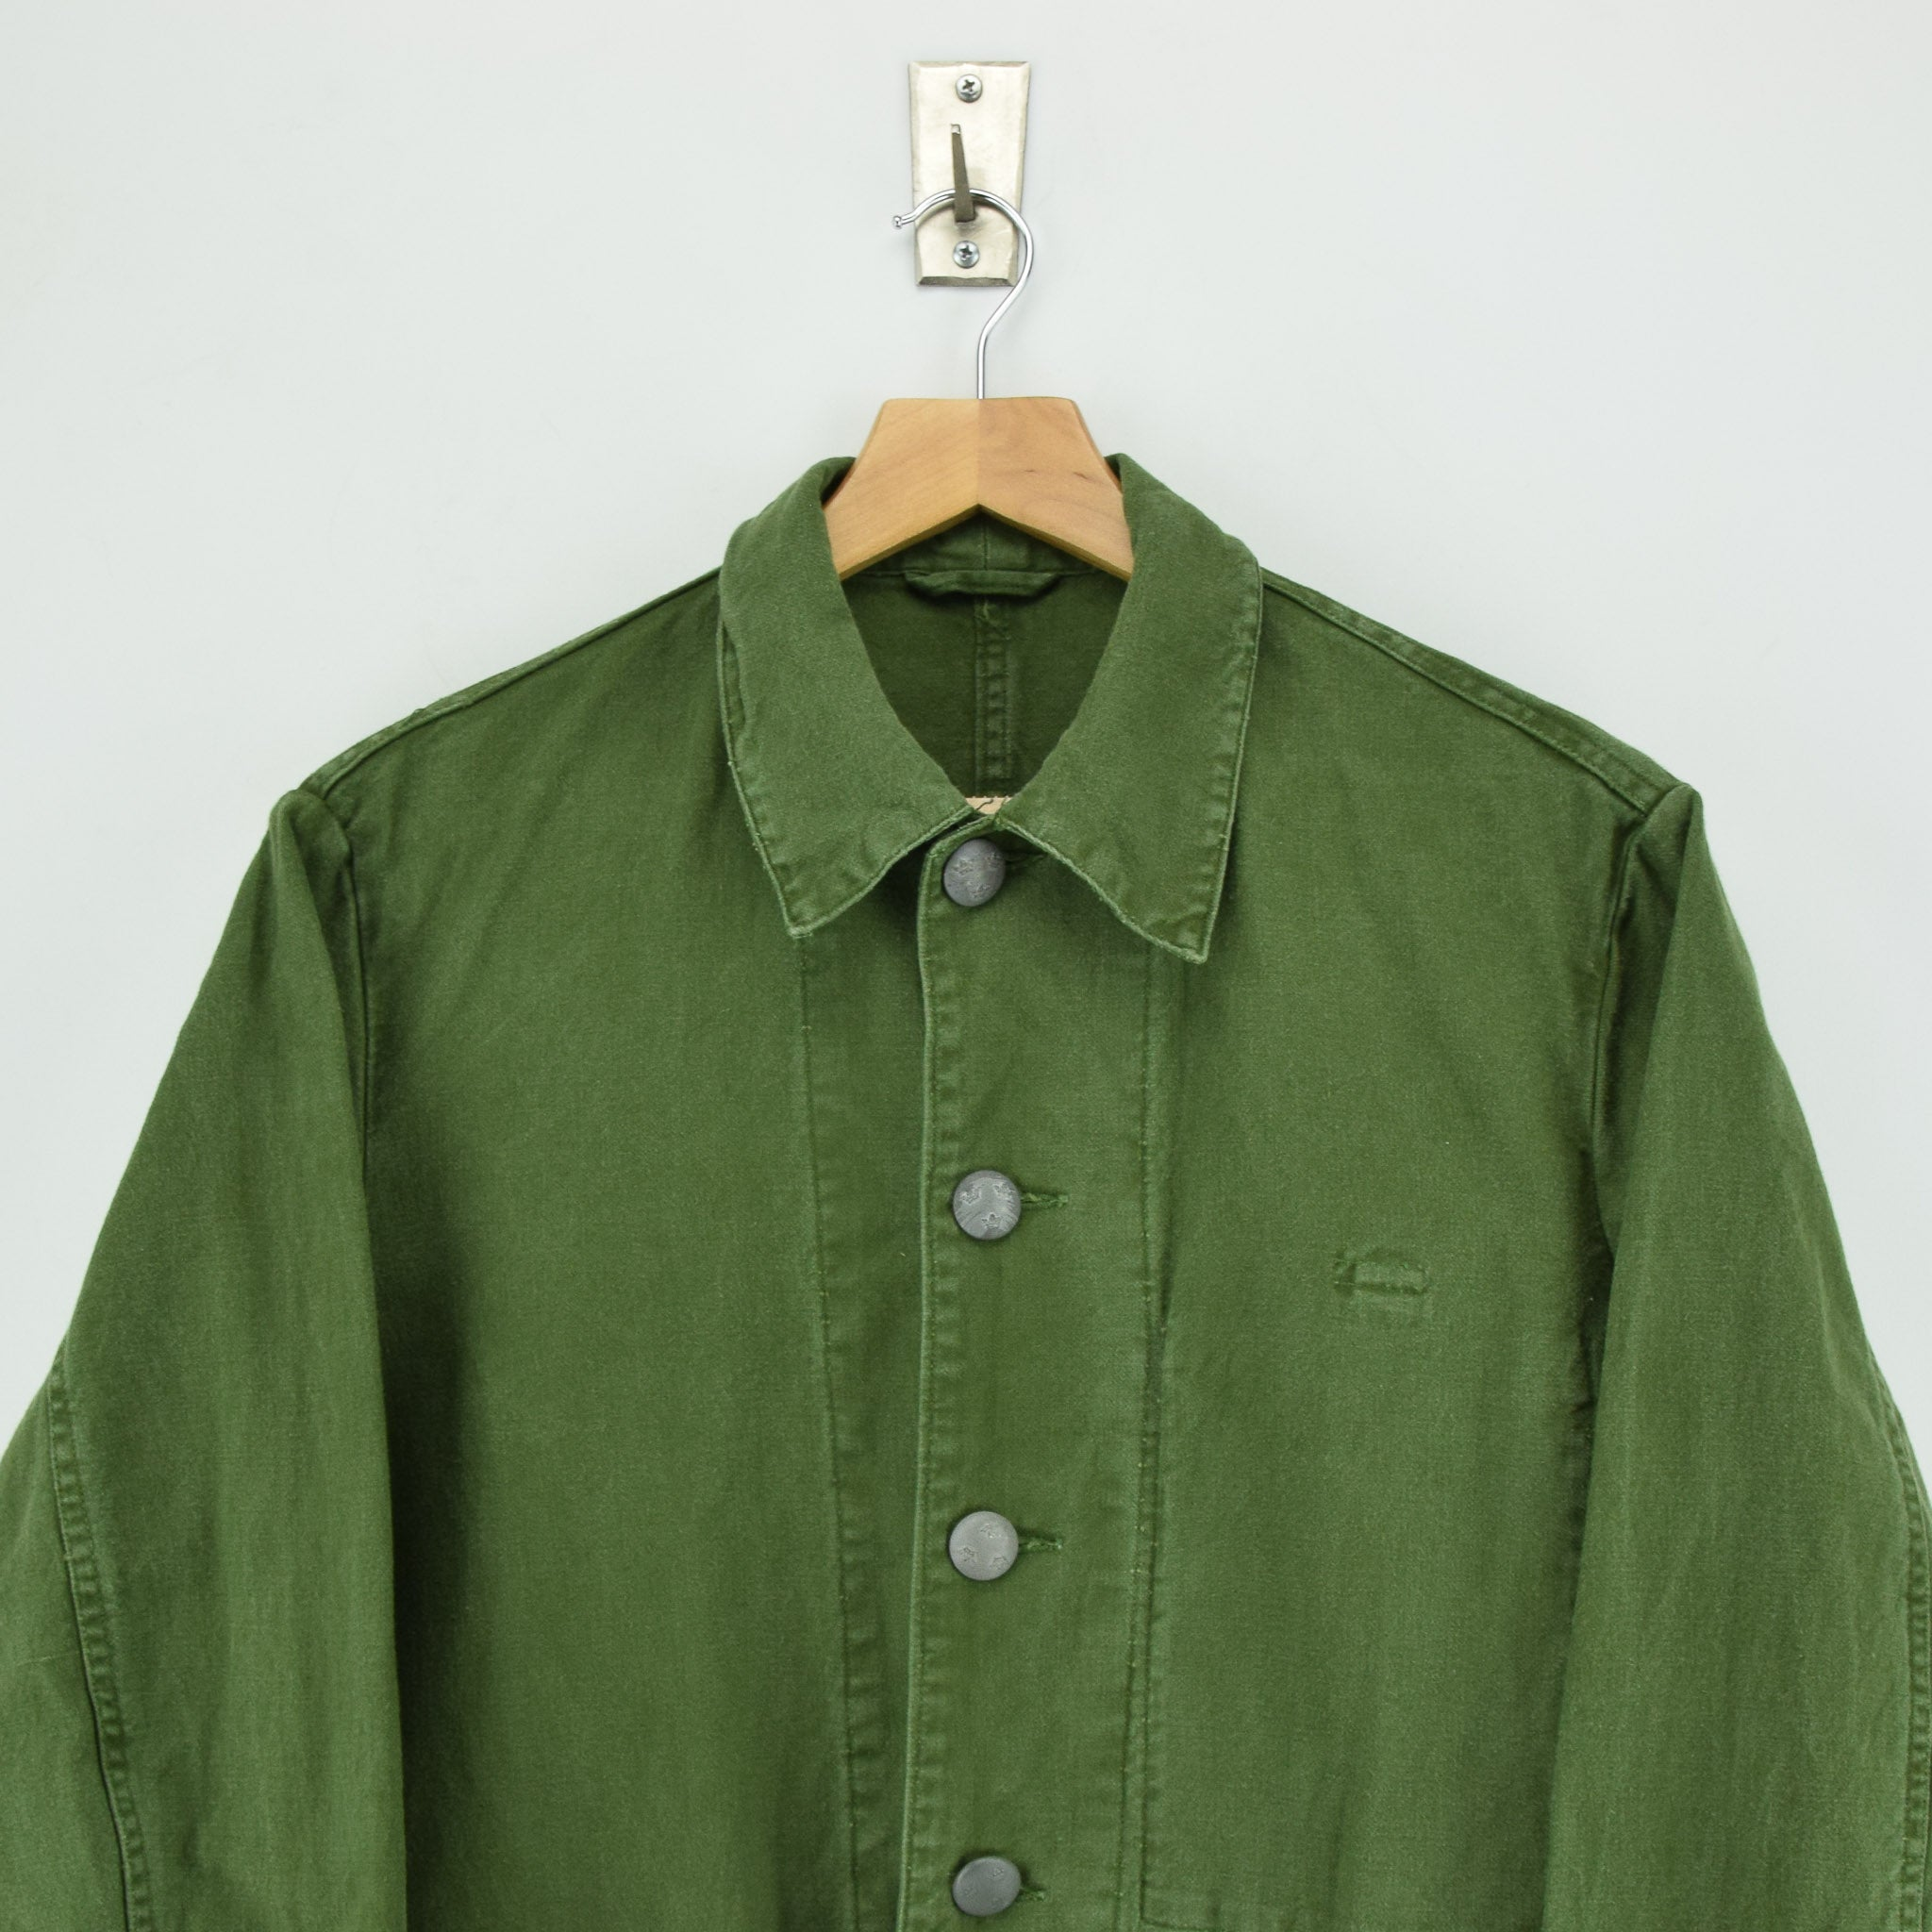 Vintage 60s Swedish Military Field Jacket Worker Style Distressed Green S / M chest